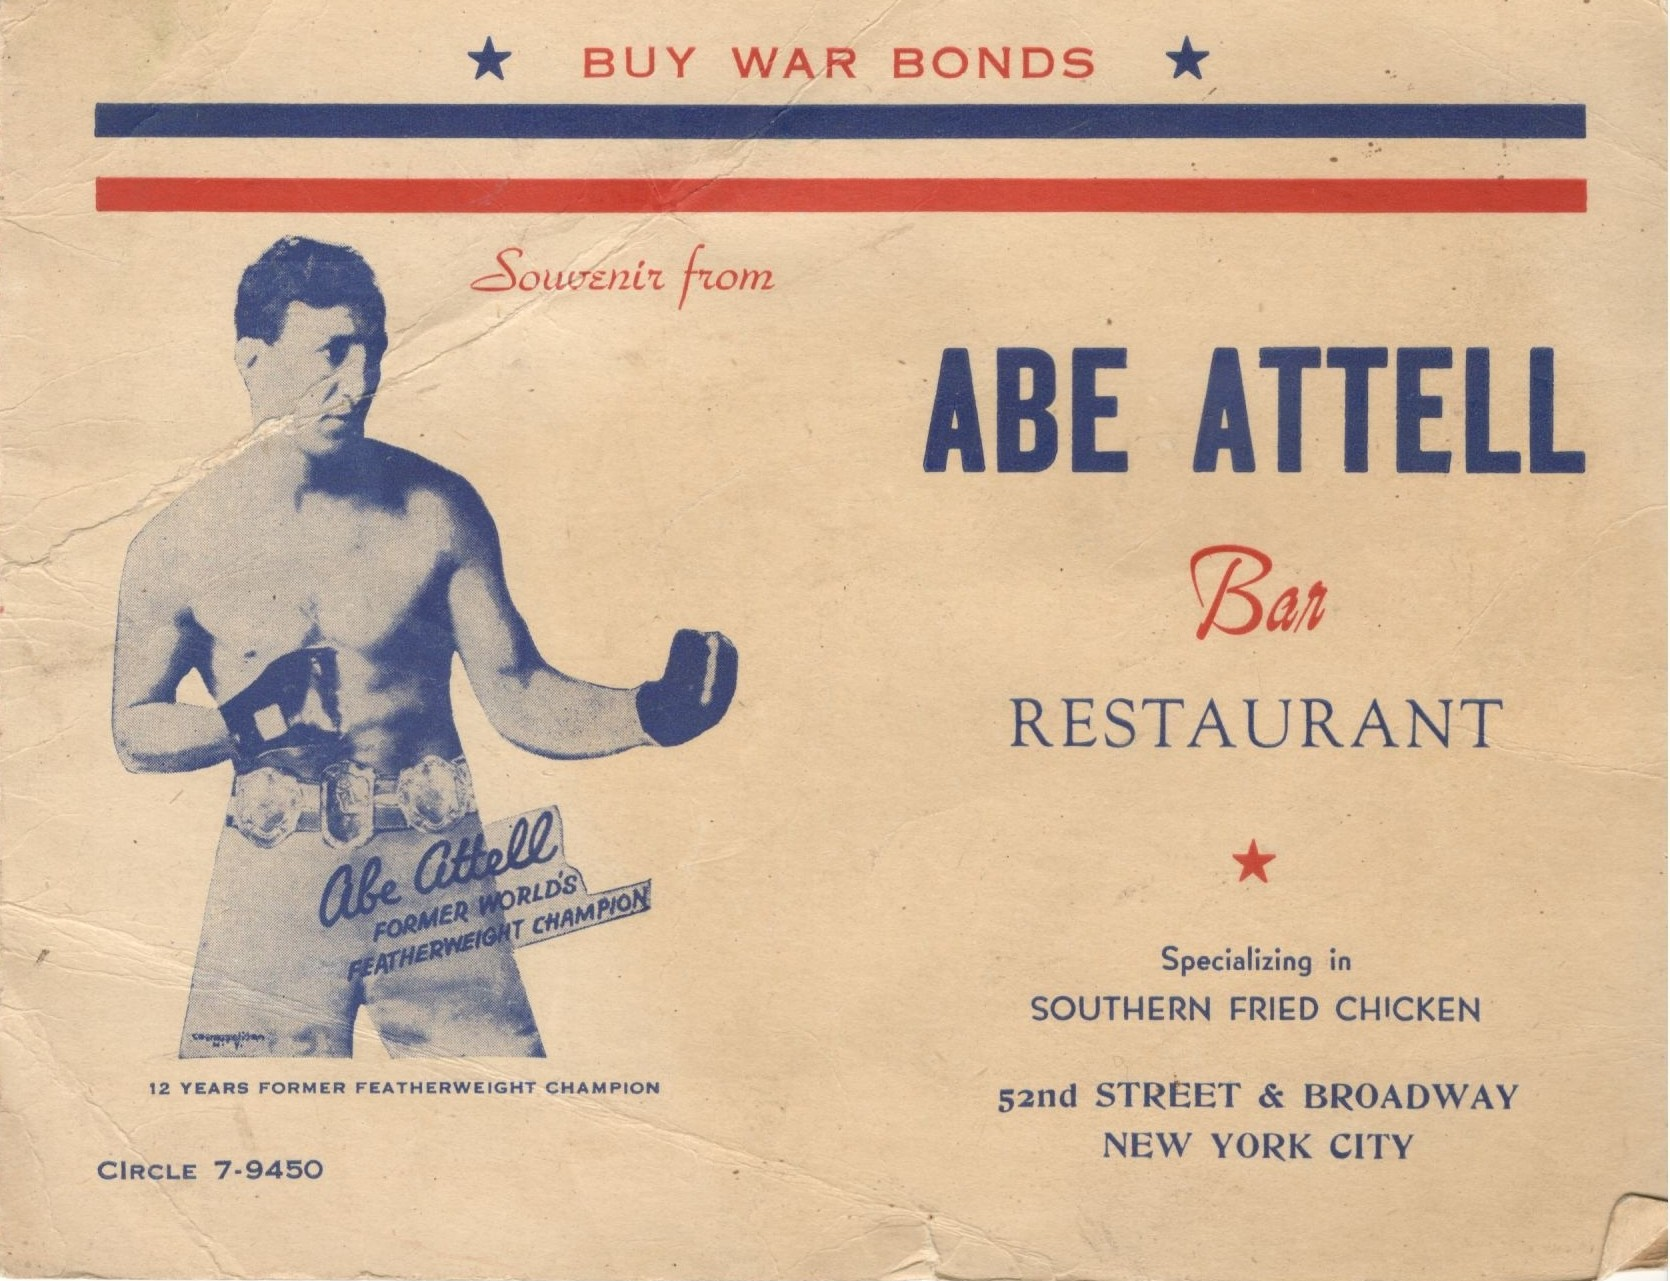 USABN Website Abe Attell Bar and Restaurant Cover.